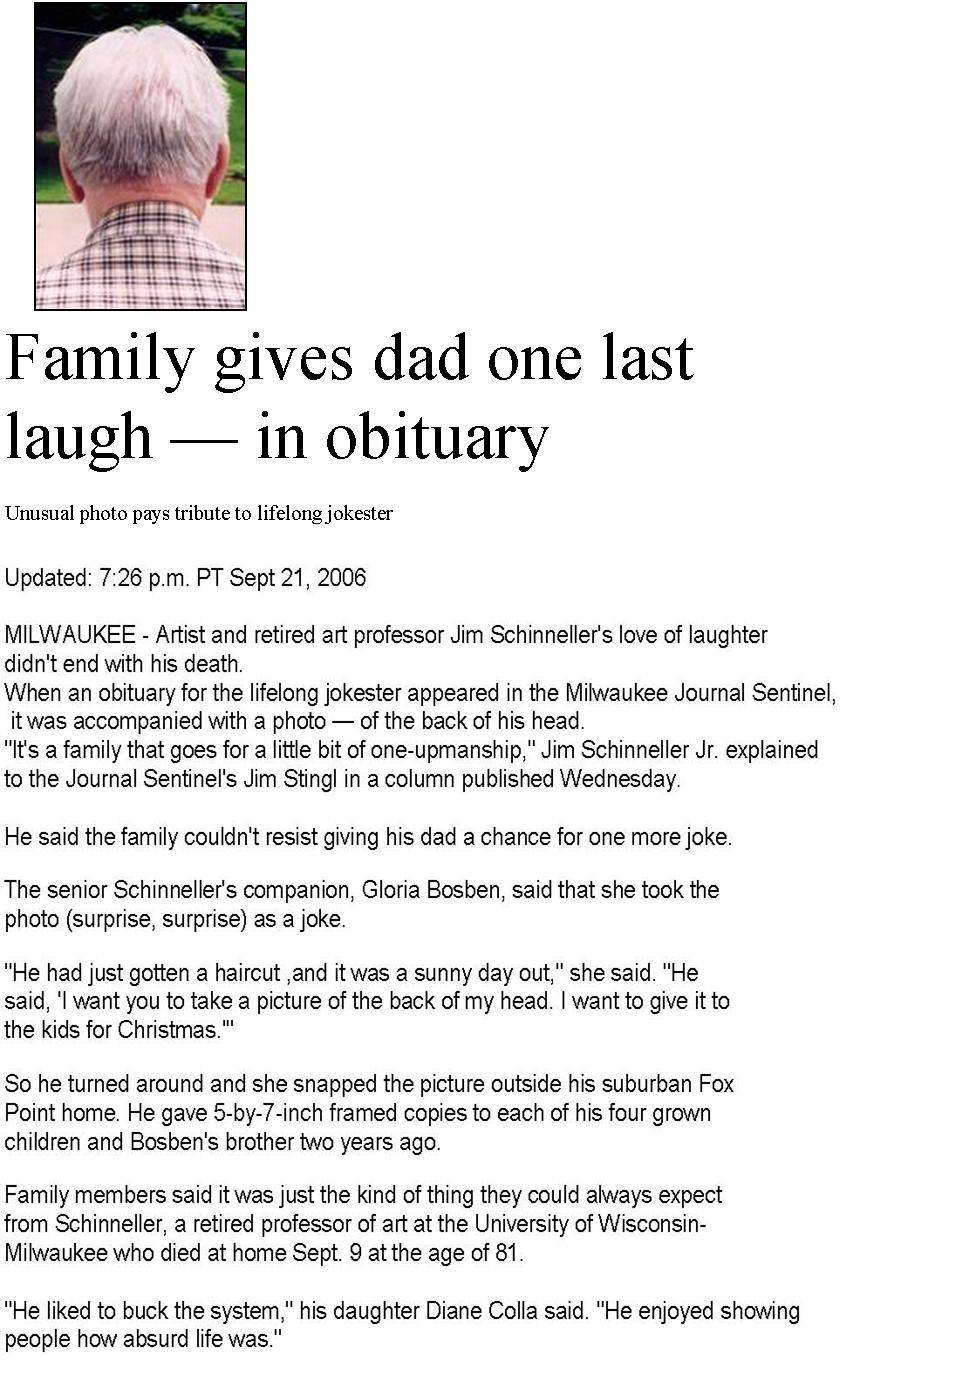 Template For Writing Obituary